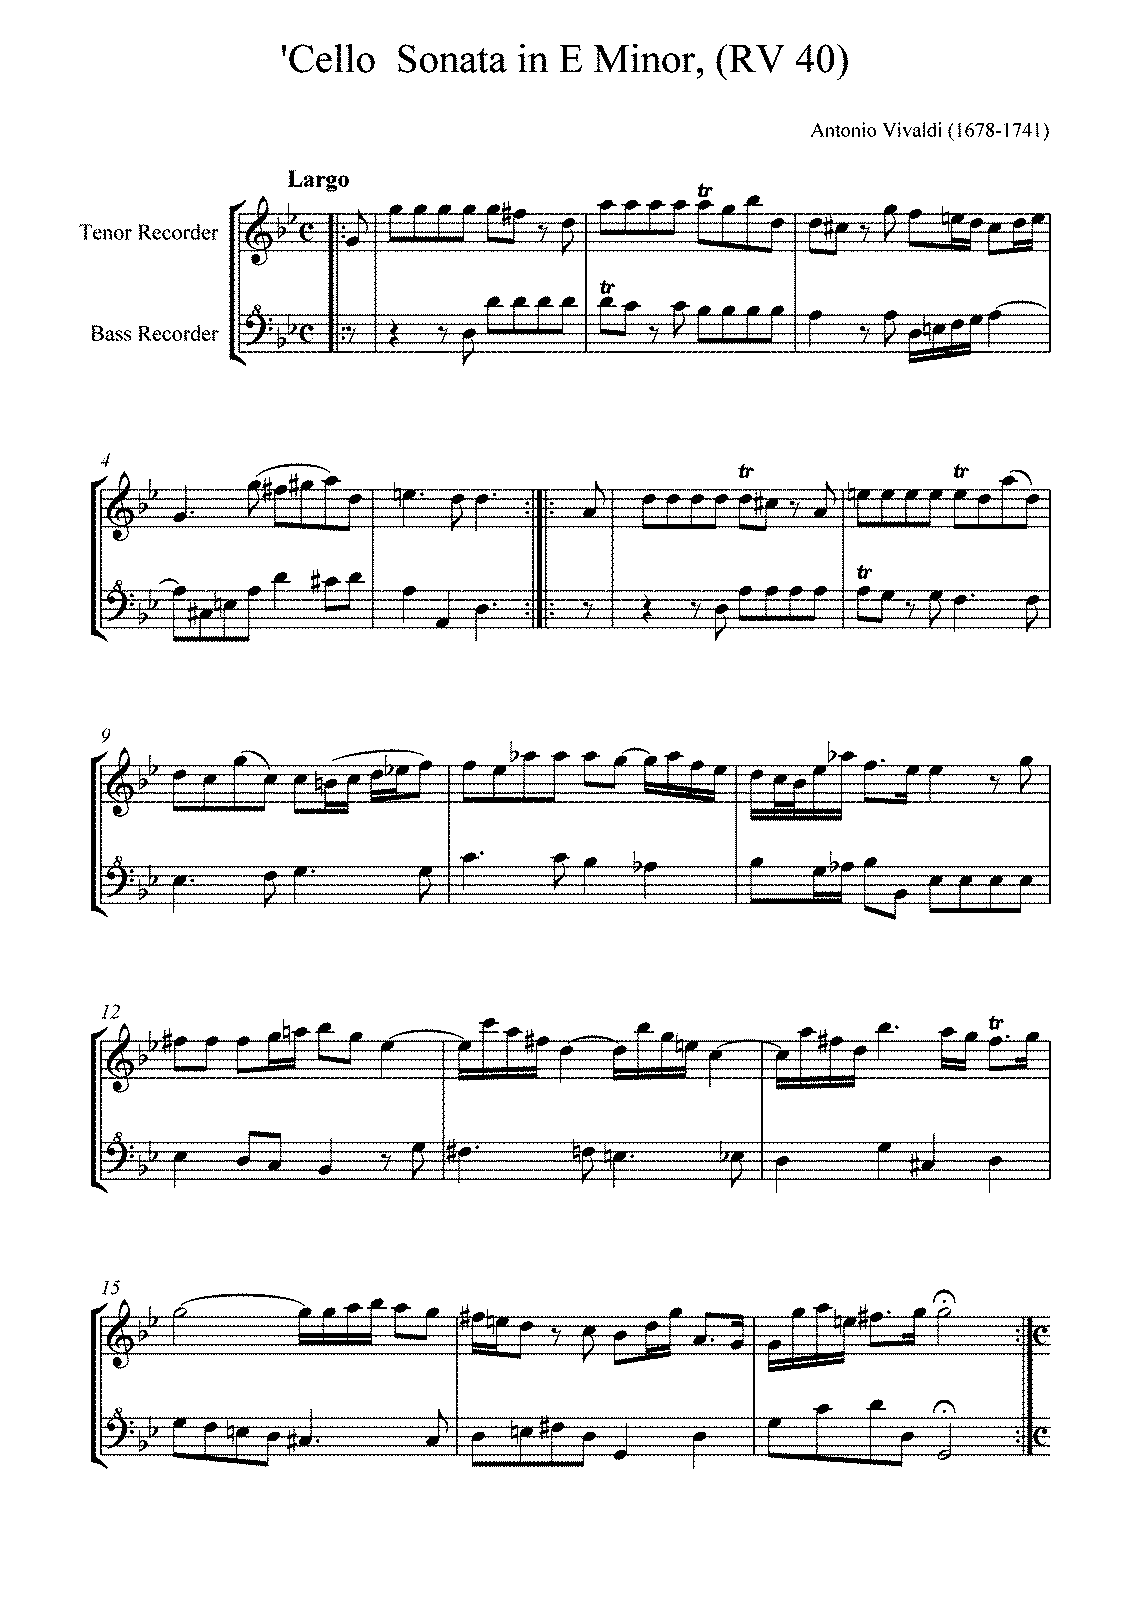 PMLP294184-Vivaldi-Cello-Sonata-RV40-TenBass.pdf